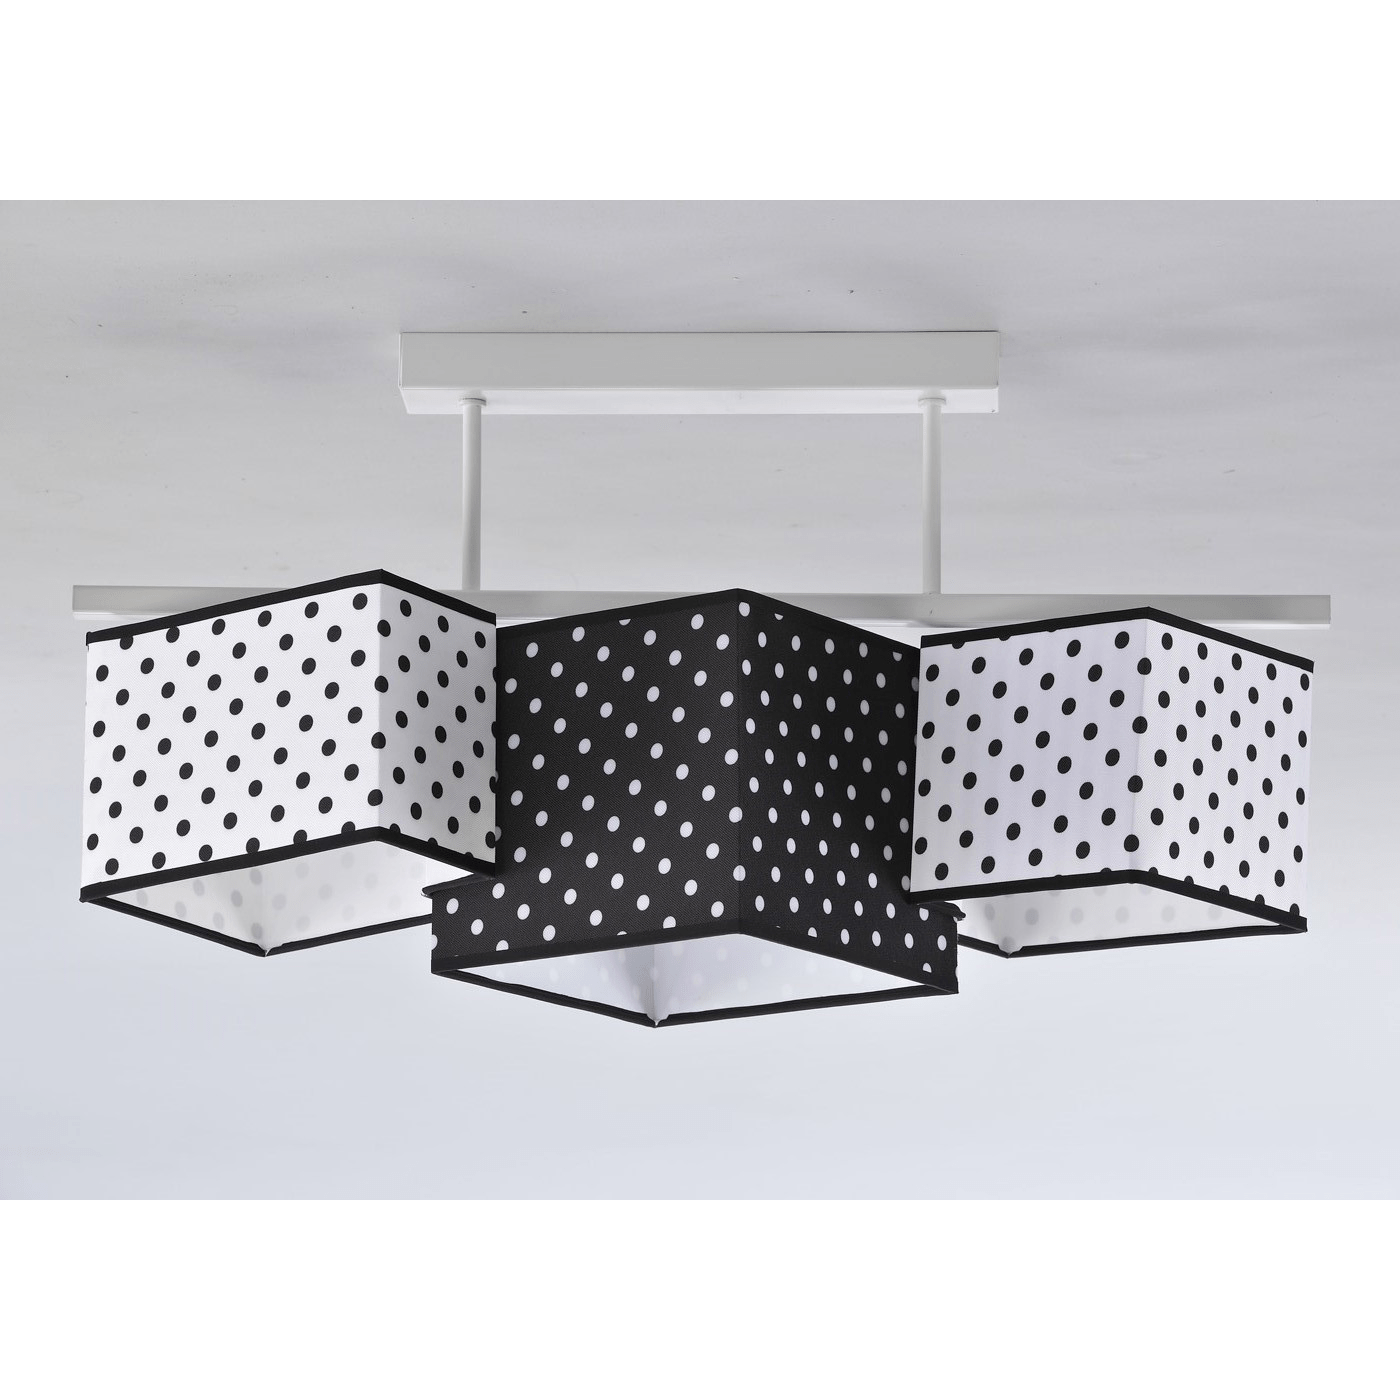 Ceiling lamp PUZZLE BELKA No. 3775